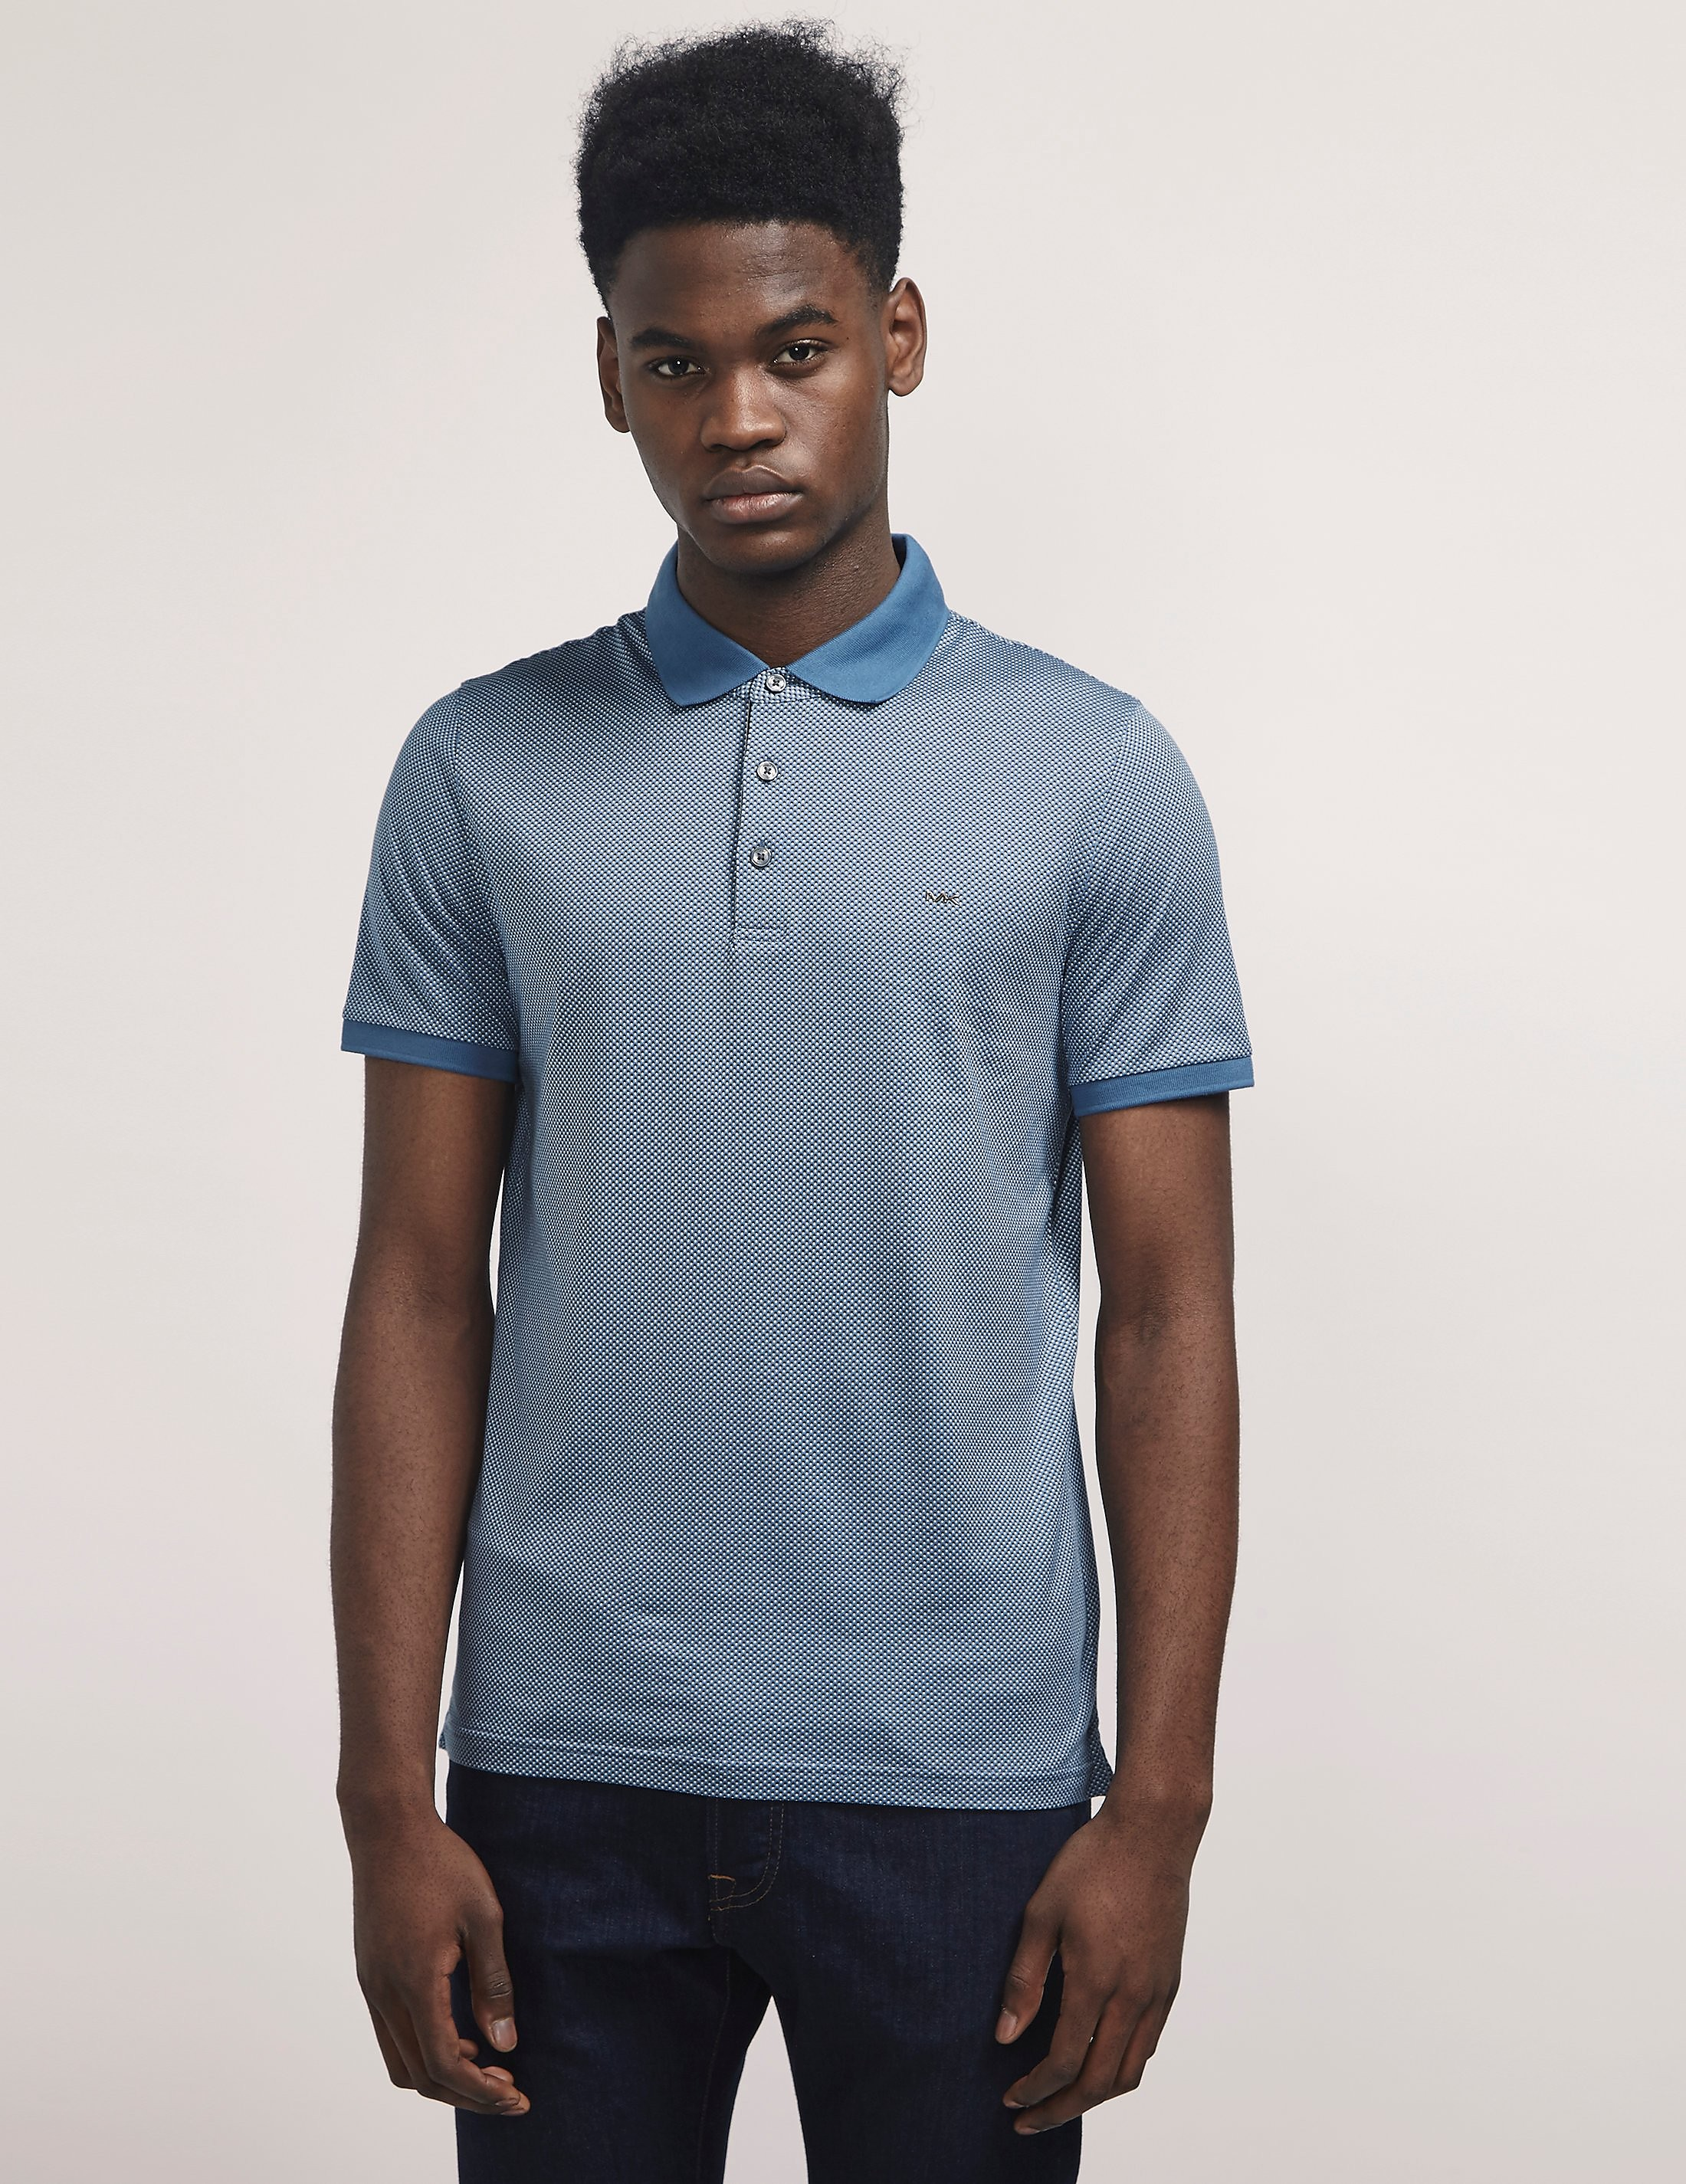 Michael Kors Dot Polo Shirt